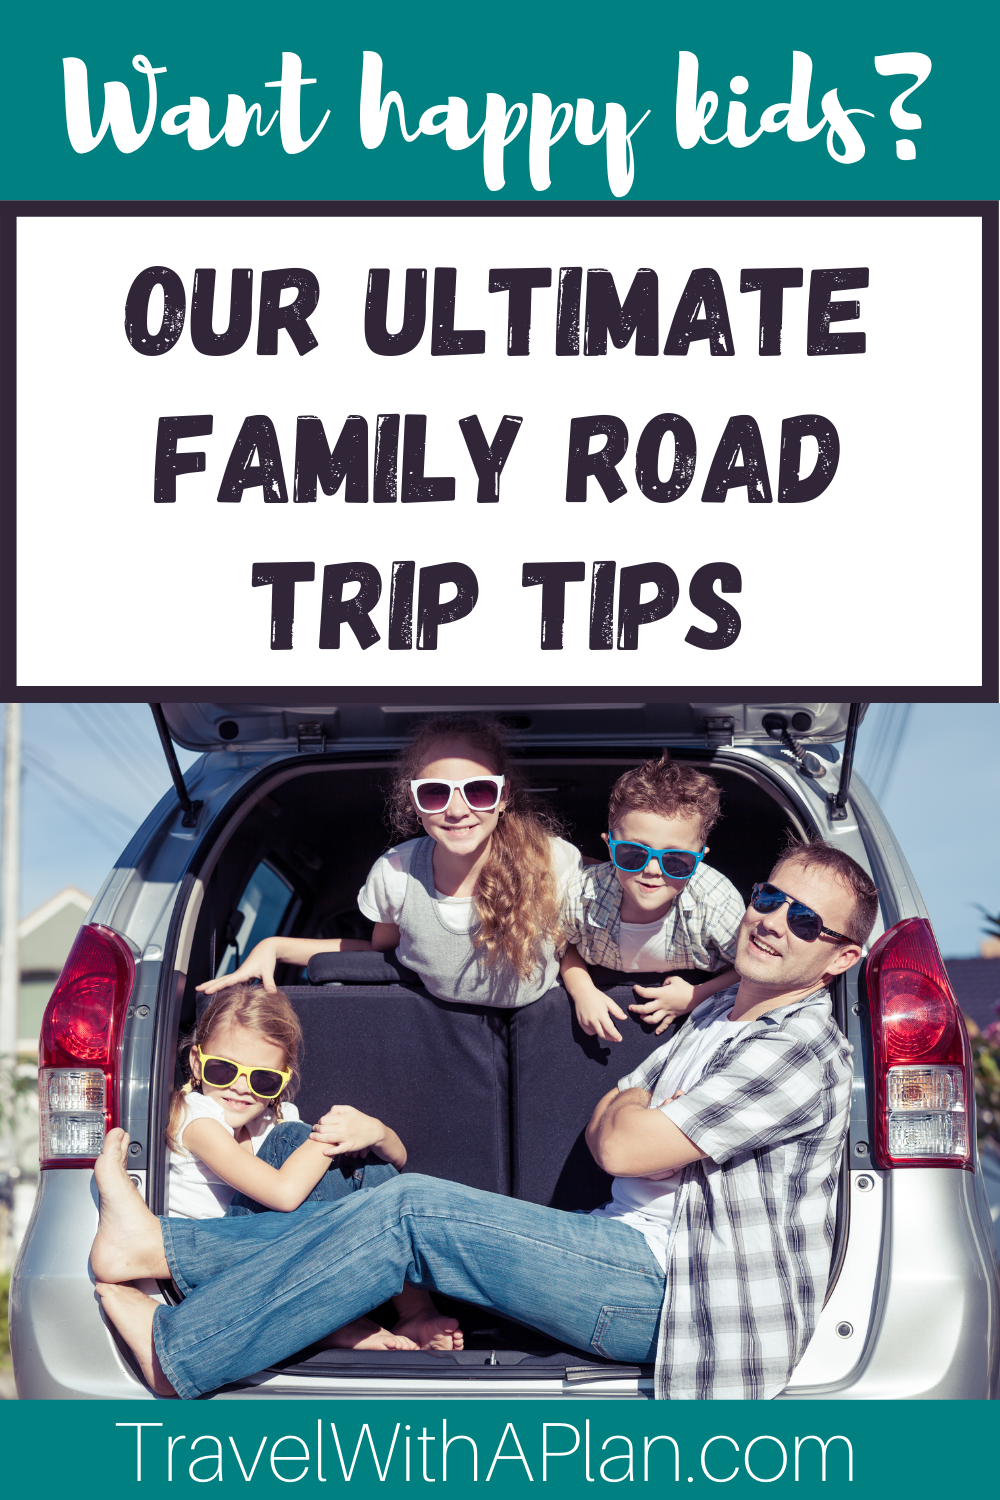 The Best Tips on Planning a Family Road Trip from Top U.S. family travel blog, Travel With A Plan!